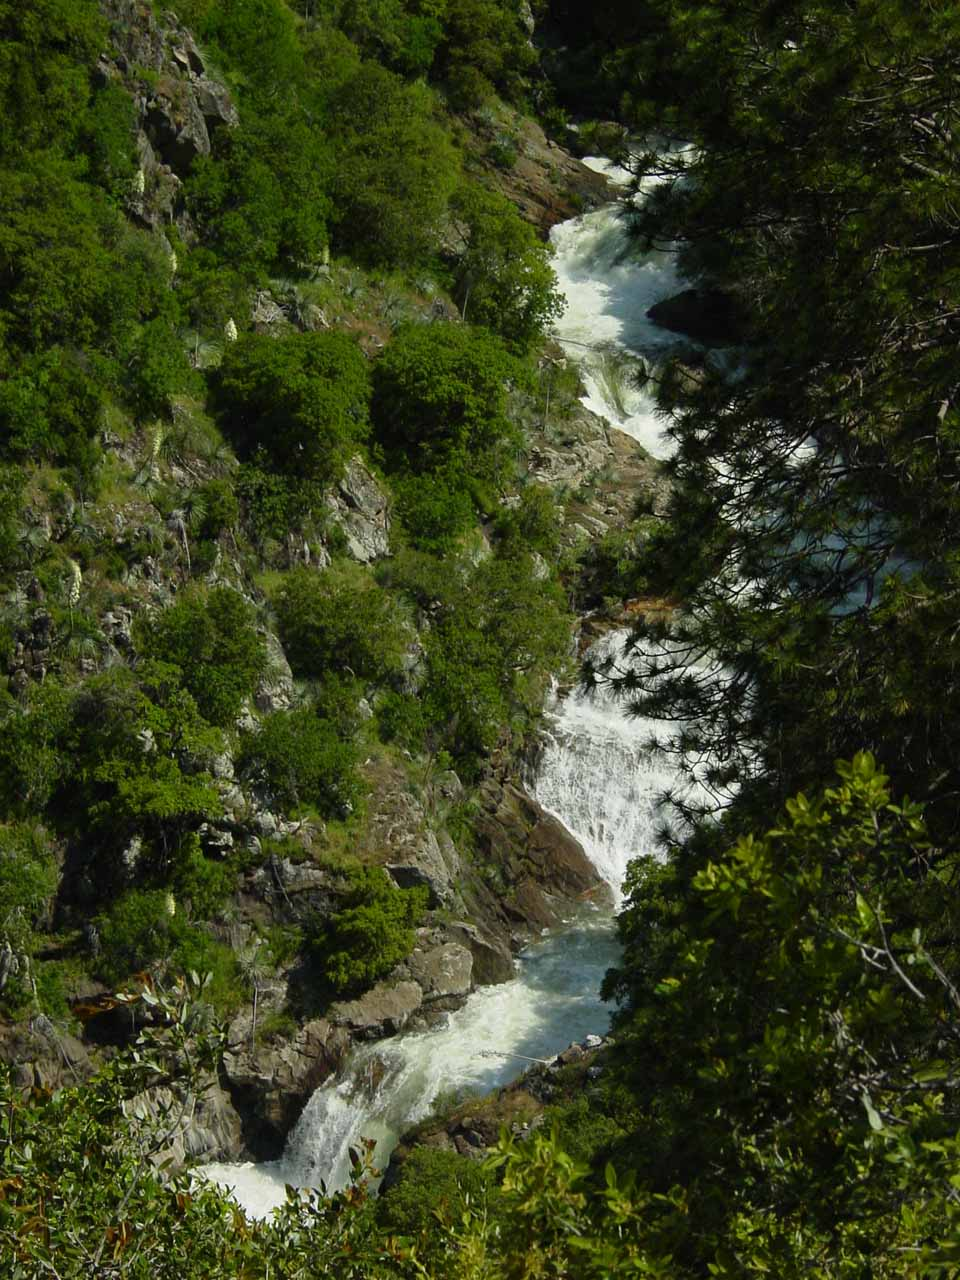 Looking down at another section of the cascades downstream from the main drop of Marble Falls